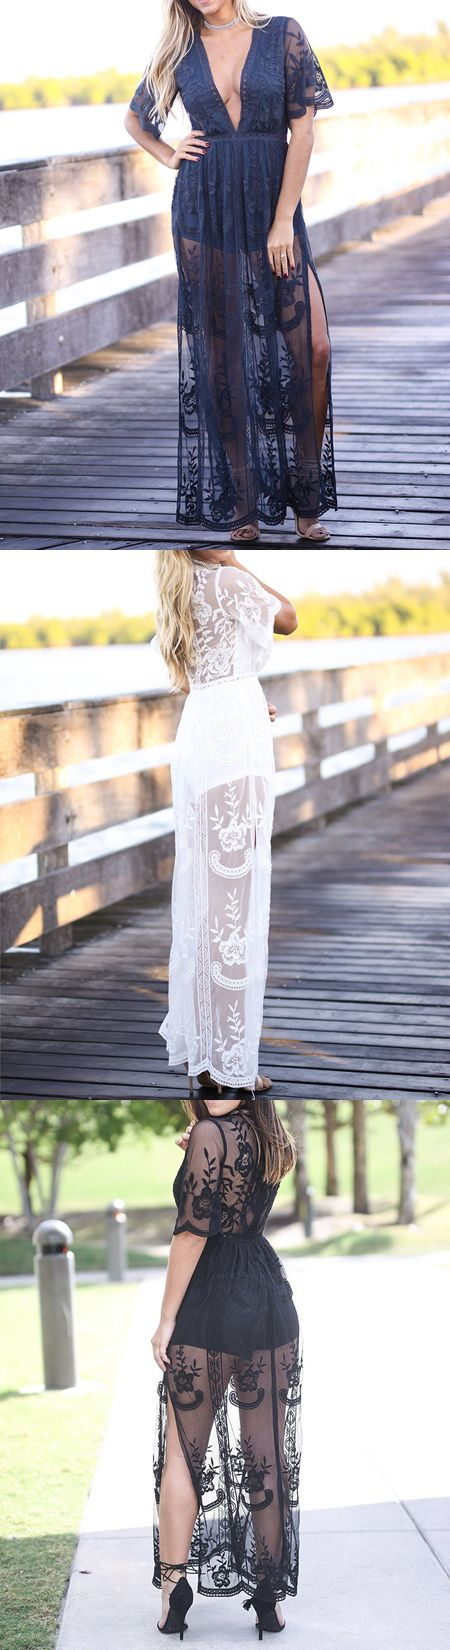 Navy Blue Plunge Thigh Split Sheer Lace Maxi Dress $32.99